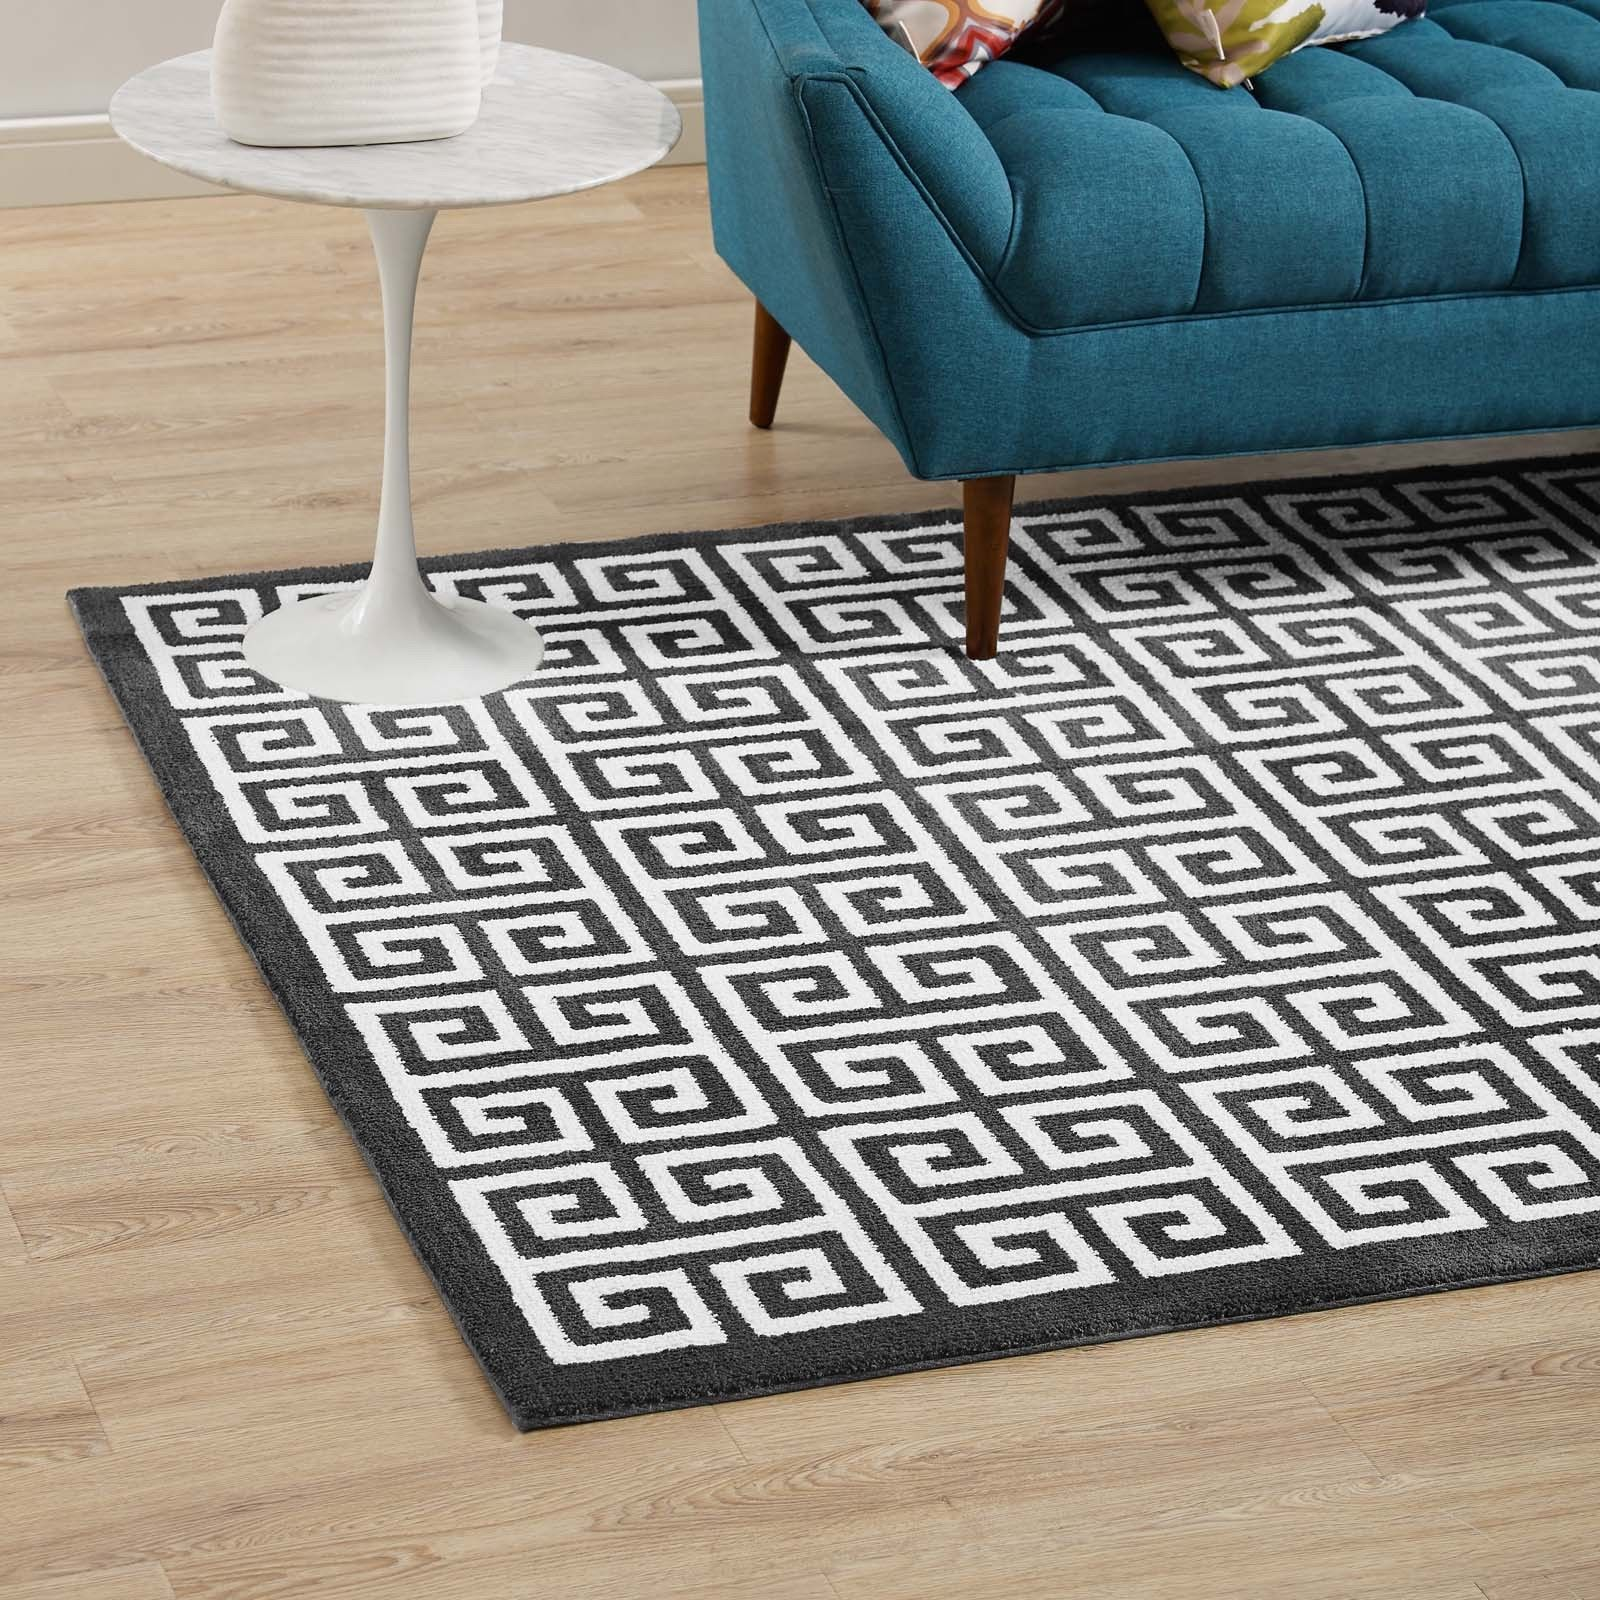 Greek Key Trellis Lattice Low Pile 5x8 Area Rug in Black and White